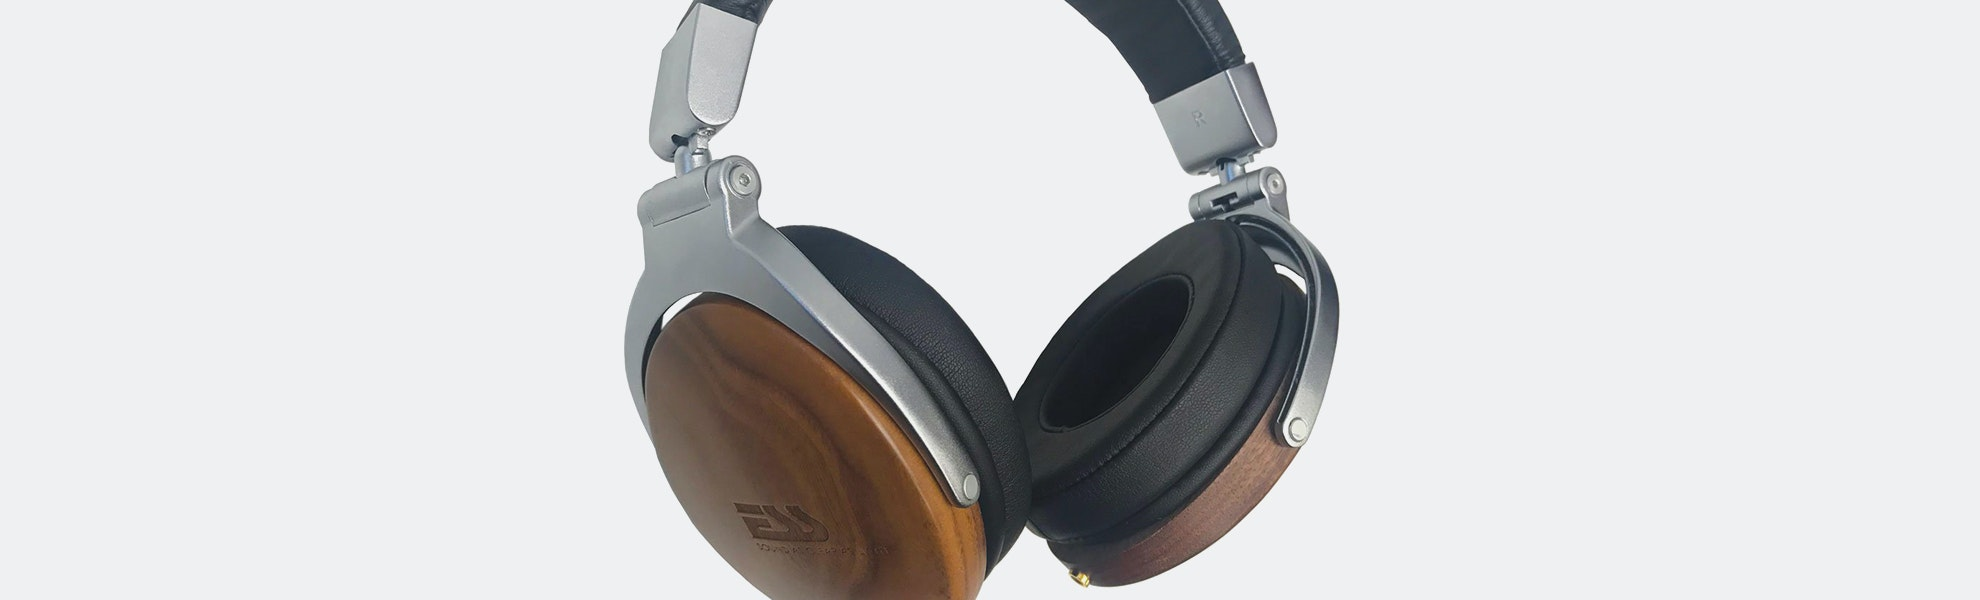 ESS 422H Headphones